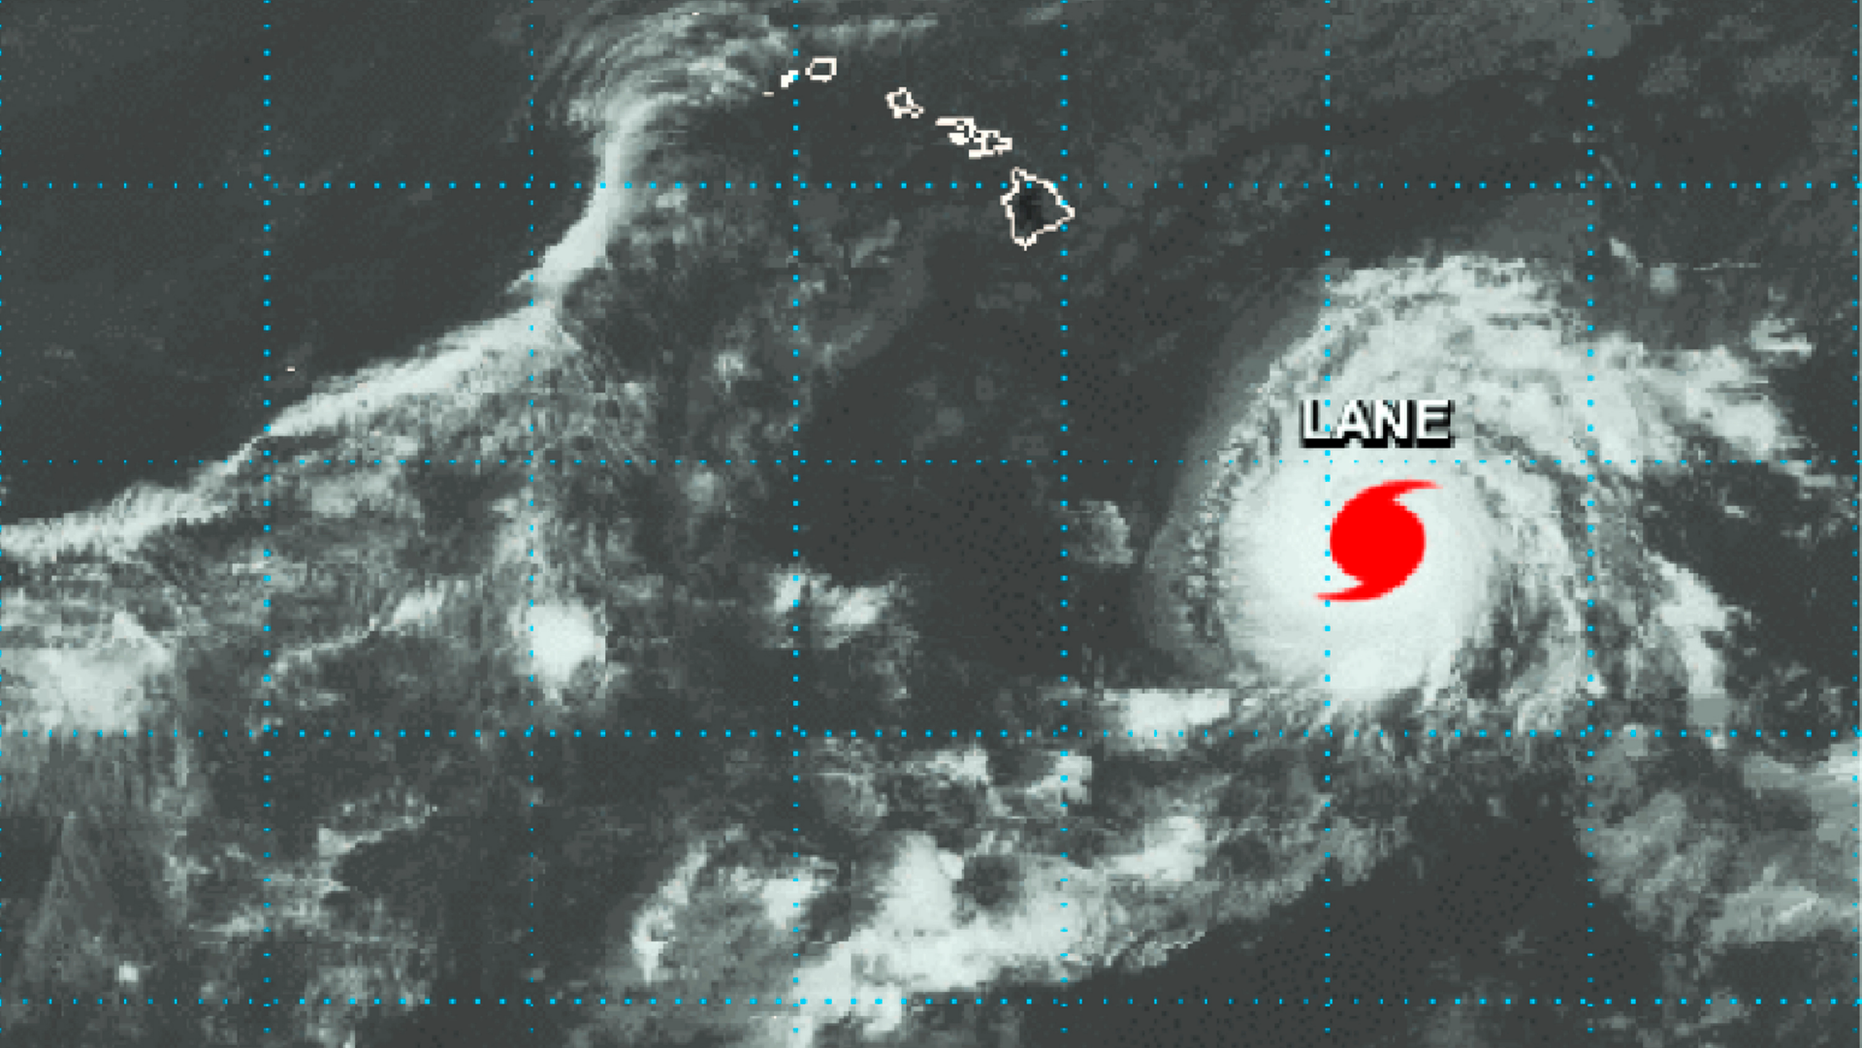 This NASA satellite imagery shows Hurricane Lane in the Central Pacific Ocean southeast of the Hawaiian Islands at 2:01 p.m. HST (21:01 GMT) Monday, Aug. 20, 2018.